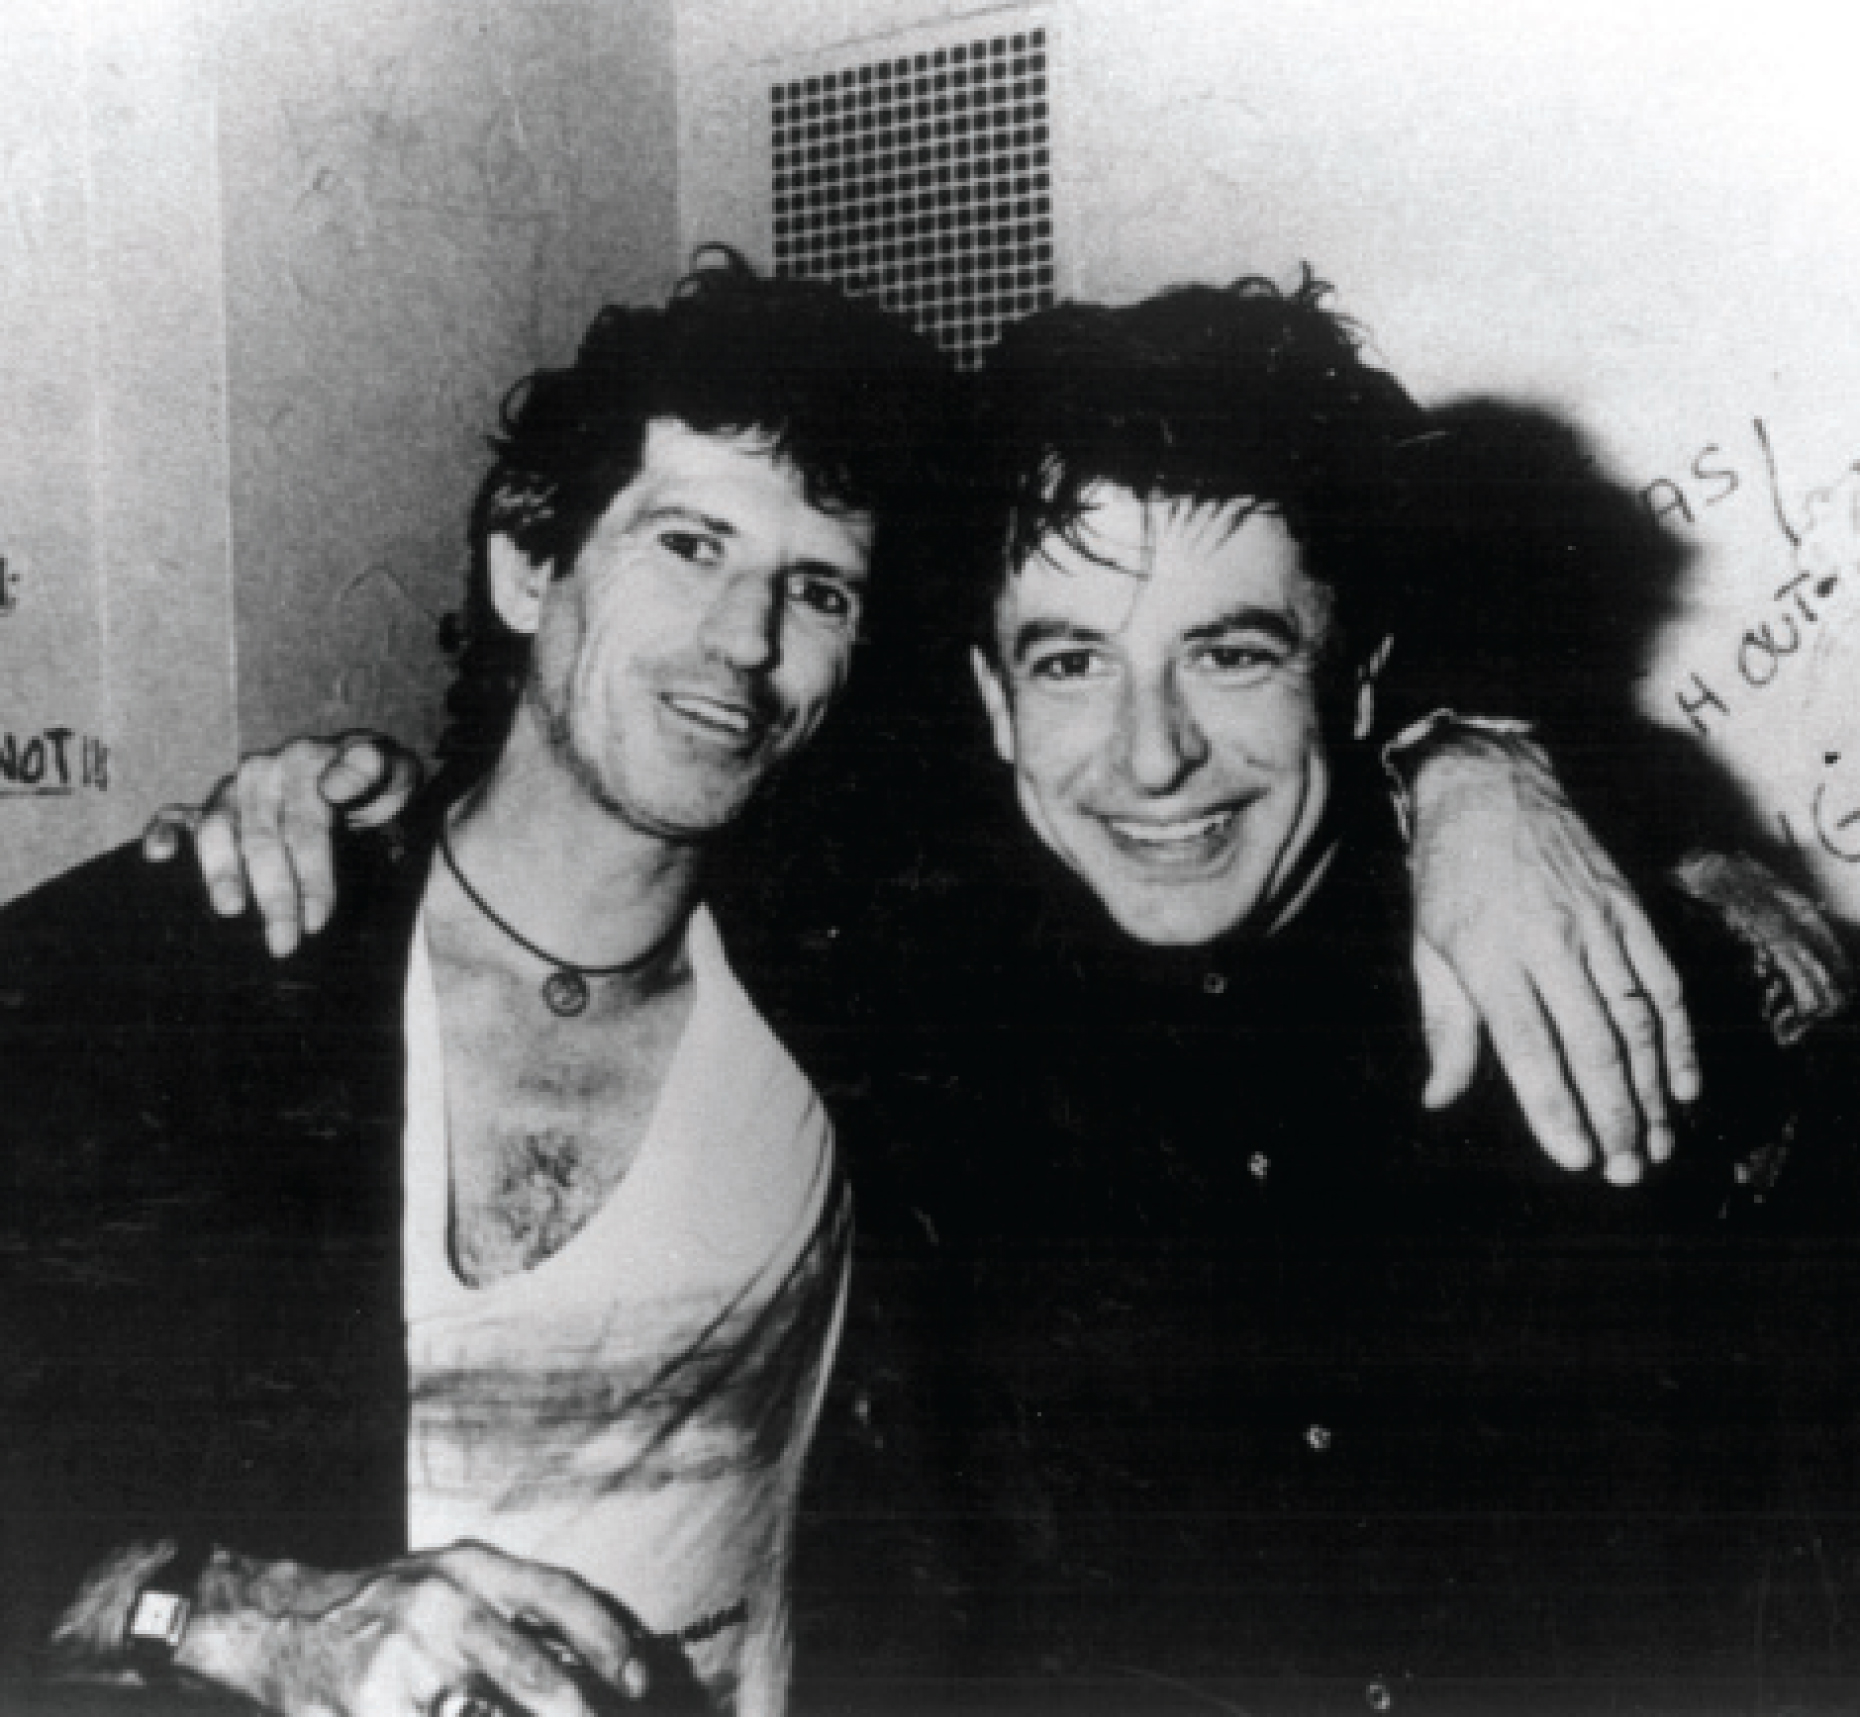 Keith Richards (left) — Rolling Stone, Rock & Roll Hall of Famer, New York Times bestselling author and the second coolest dude in this picture (taken Sept. 27, 1985, in New York City). Photo courtesy Joe Ely